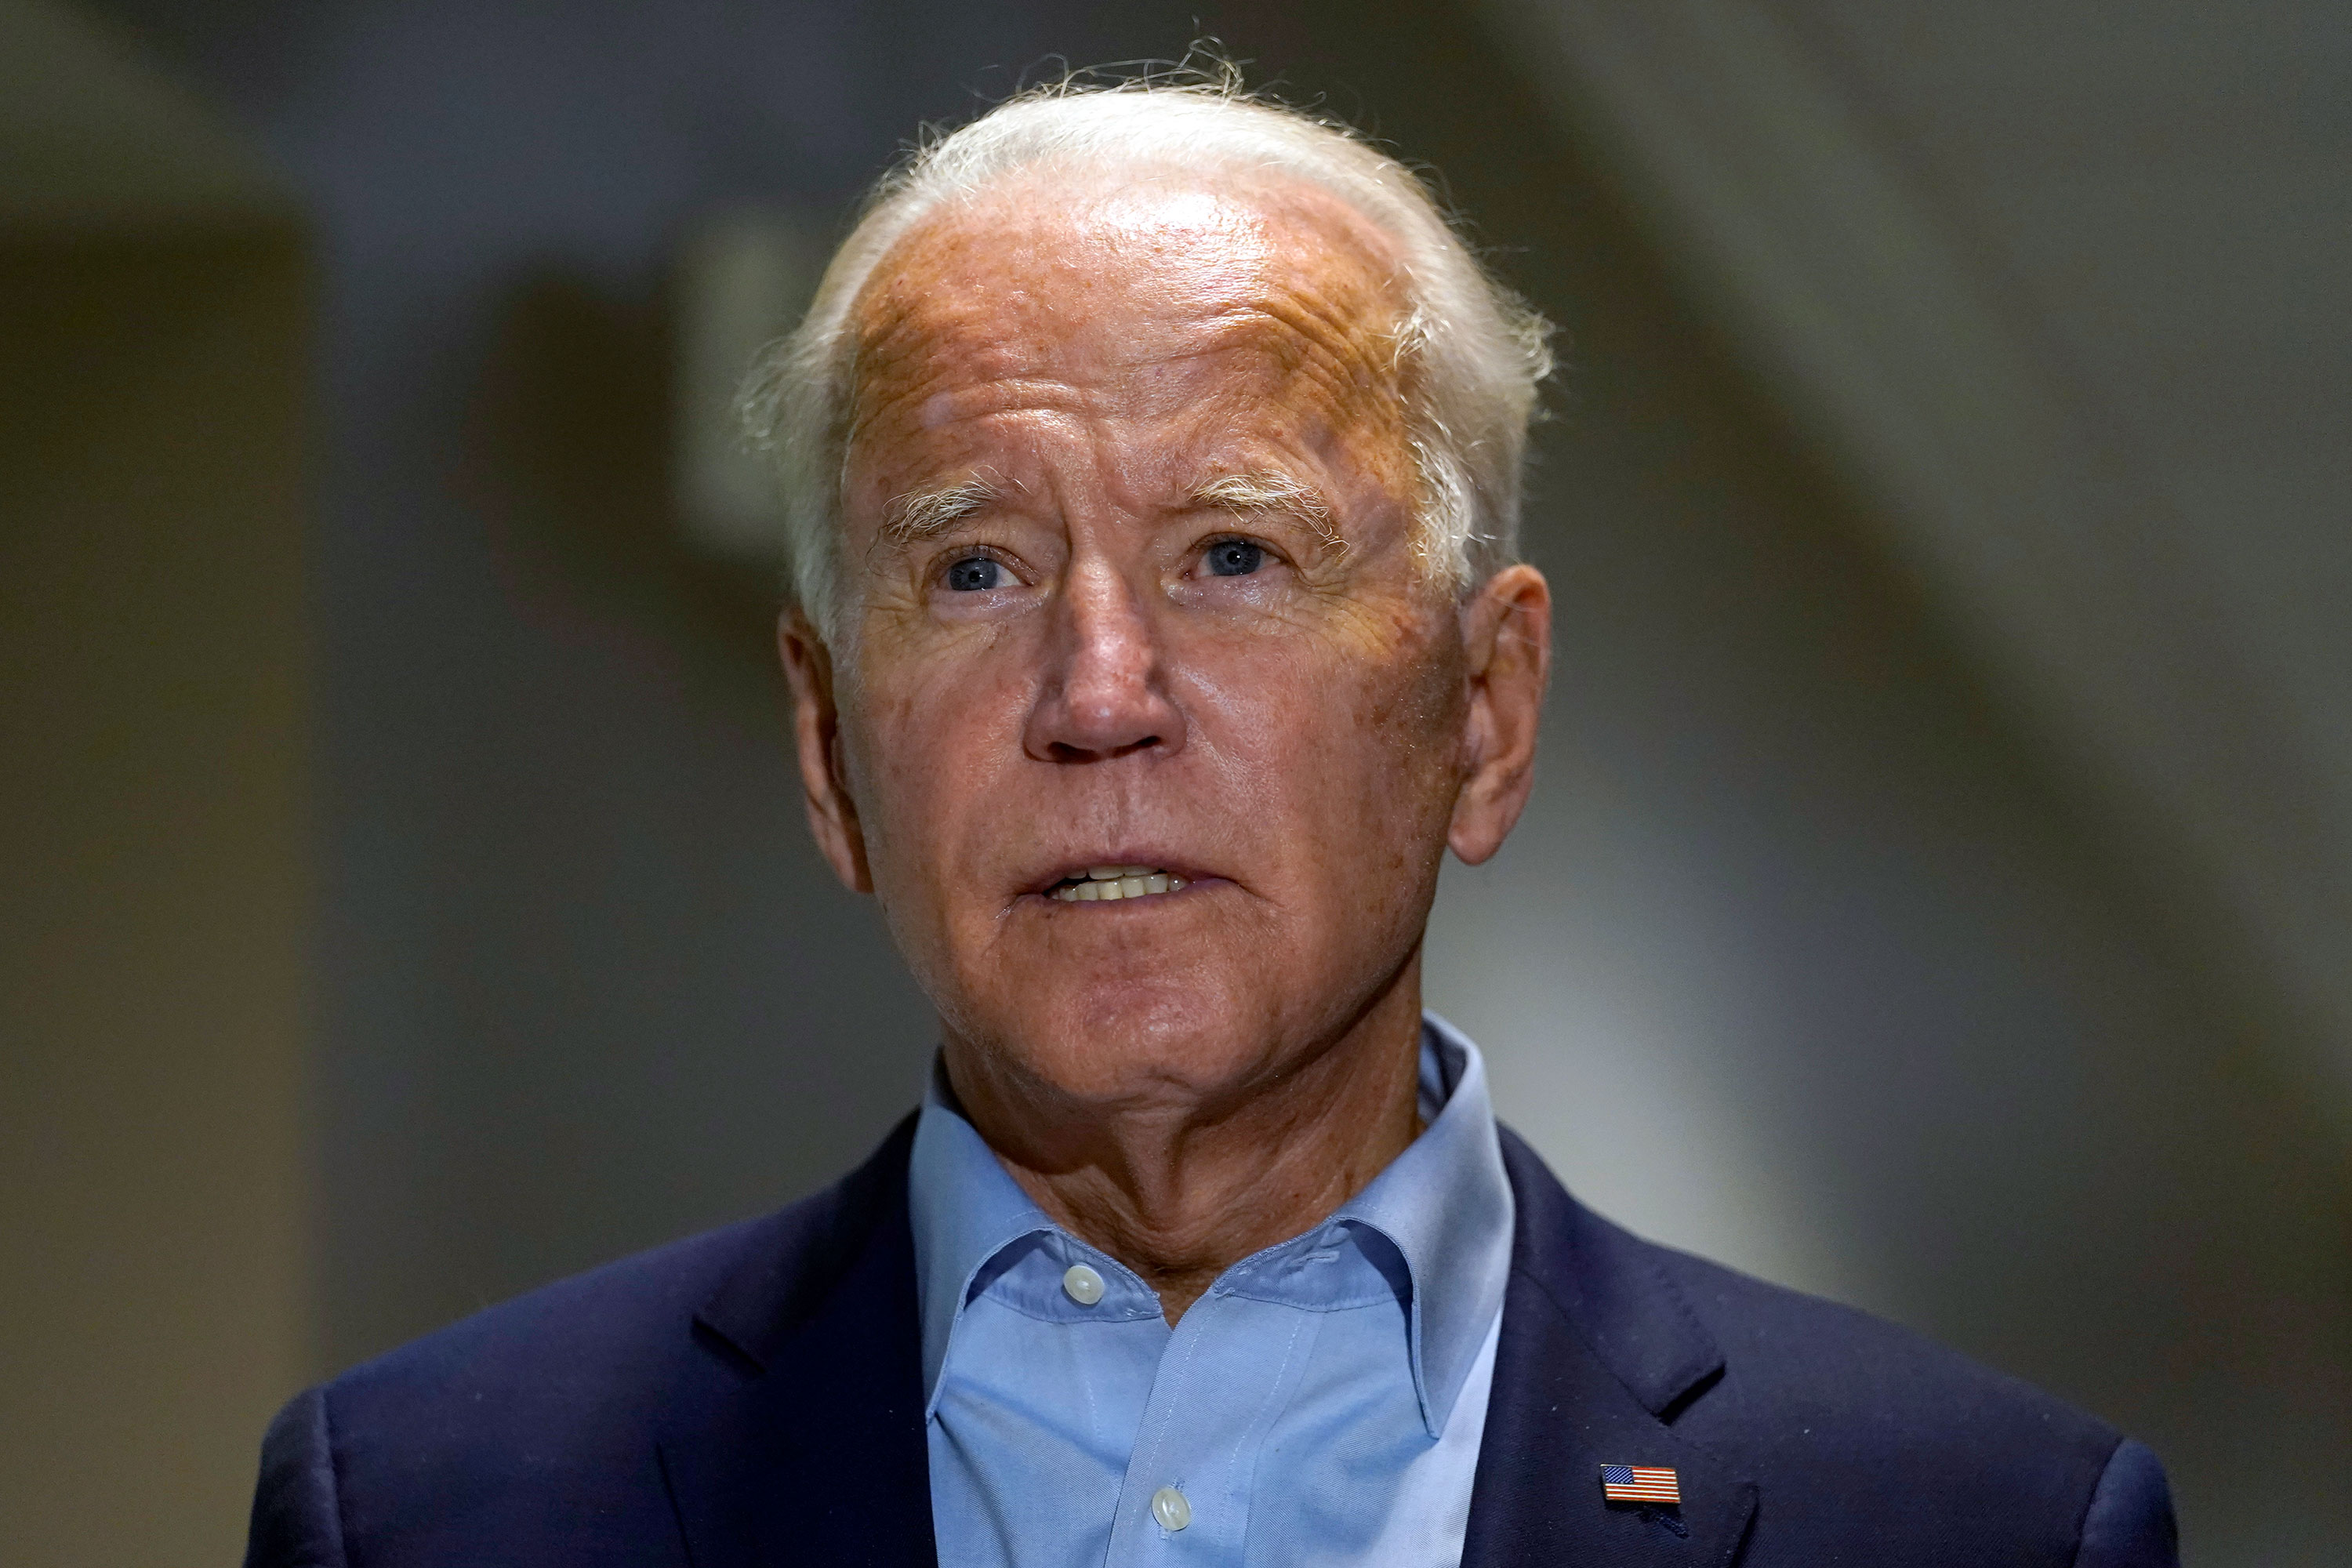 Fact check: Biden falsely claims Trump campaign only asked him for Supreme Court list after Ruth Bader Ginsburg died